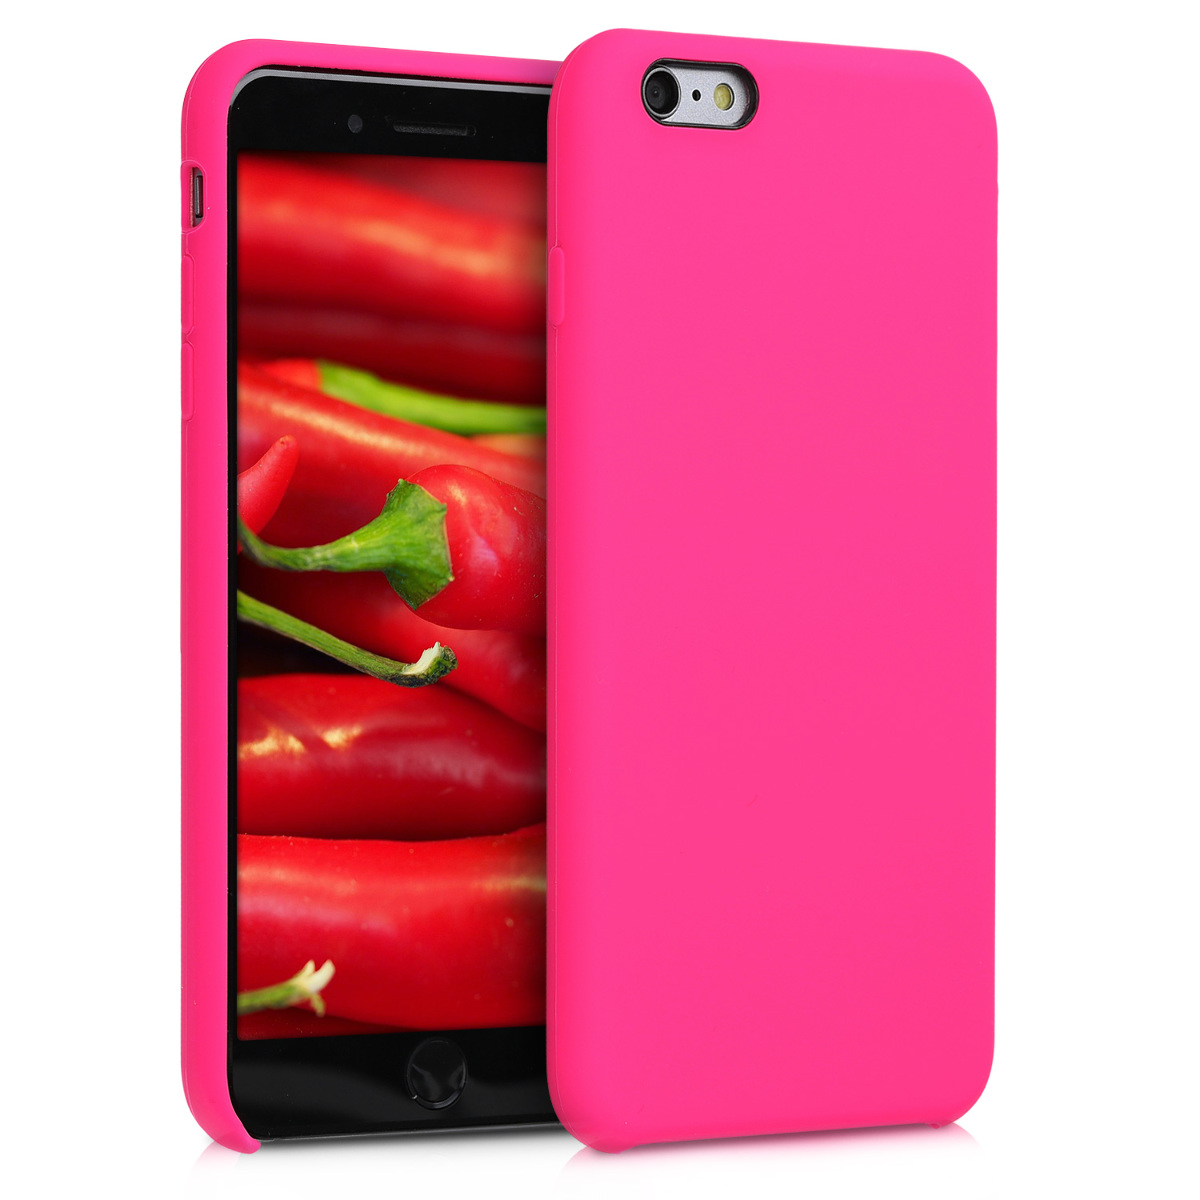 KW TPU Θήκη Σιλικόνης Apple iPhone 6 Plus / 6S Plus - Neon Pink (40841.08)